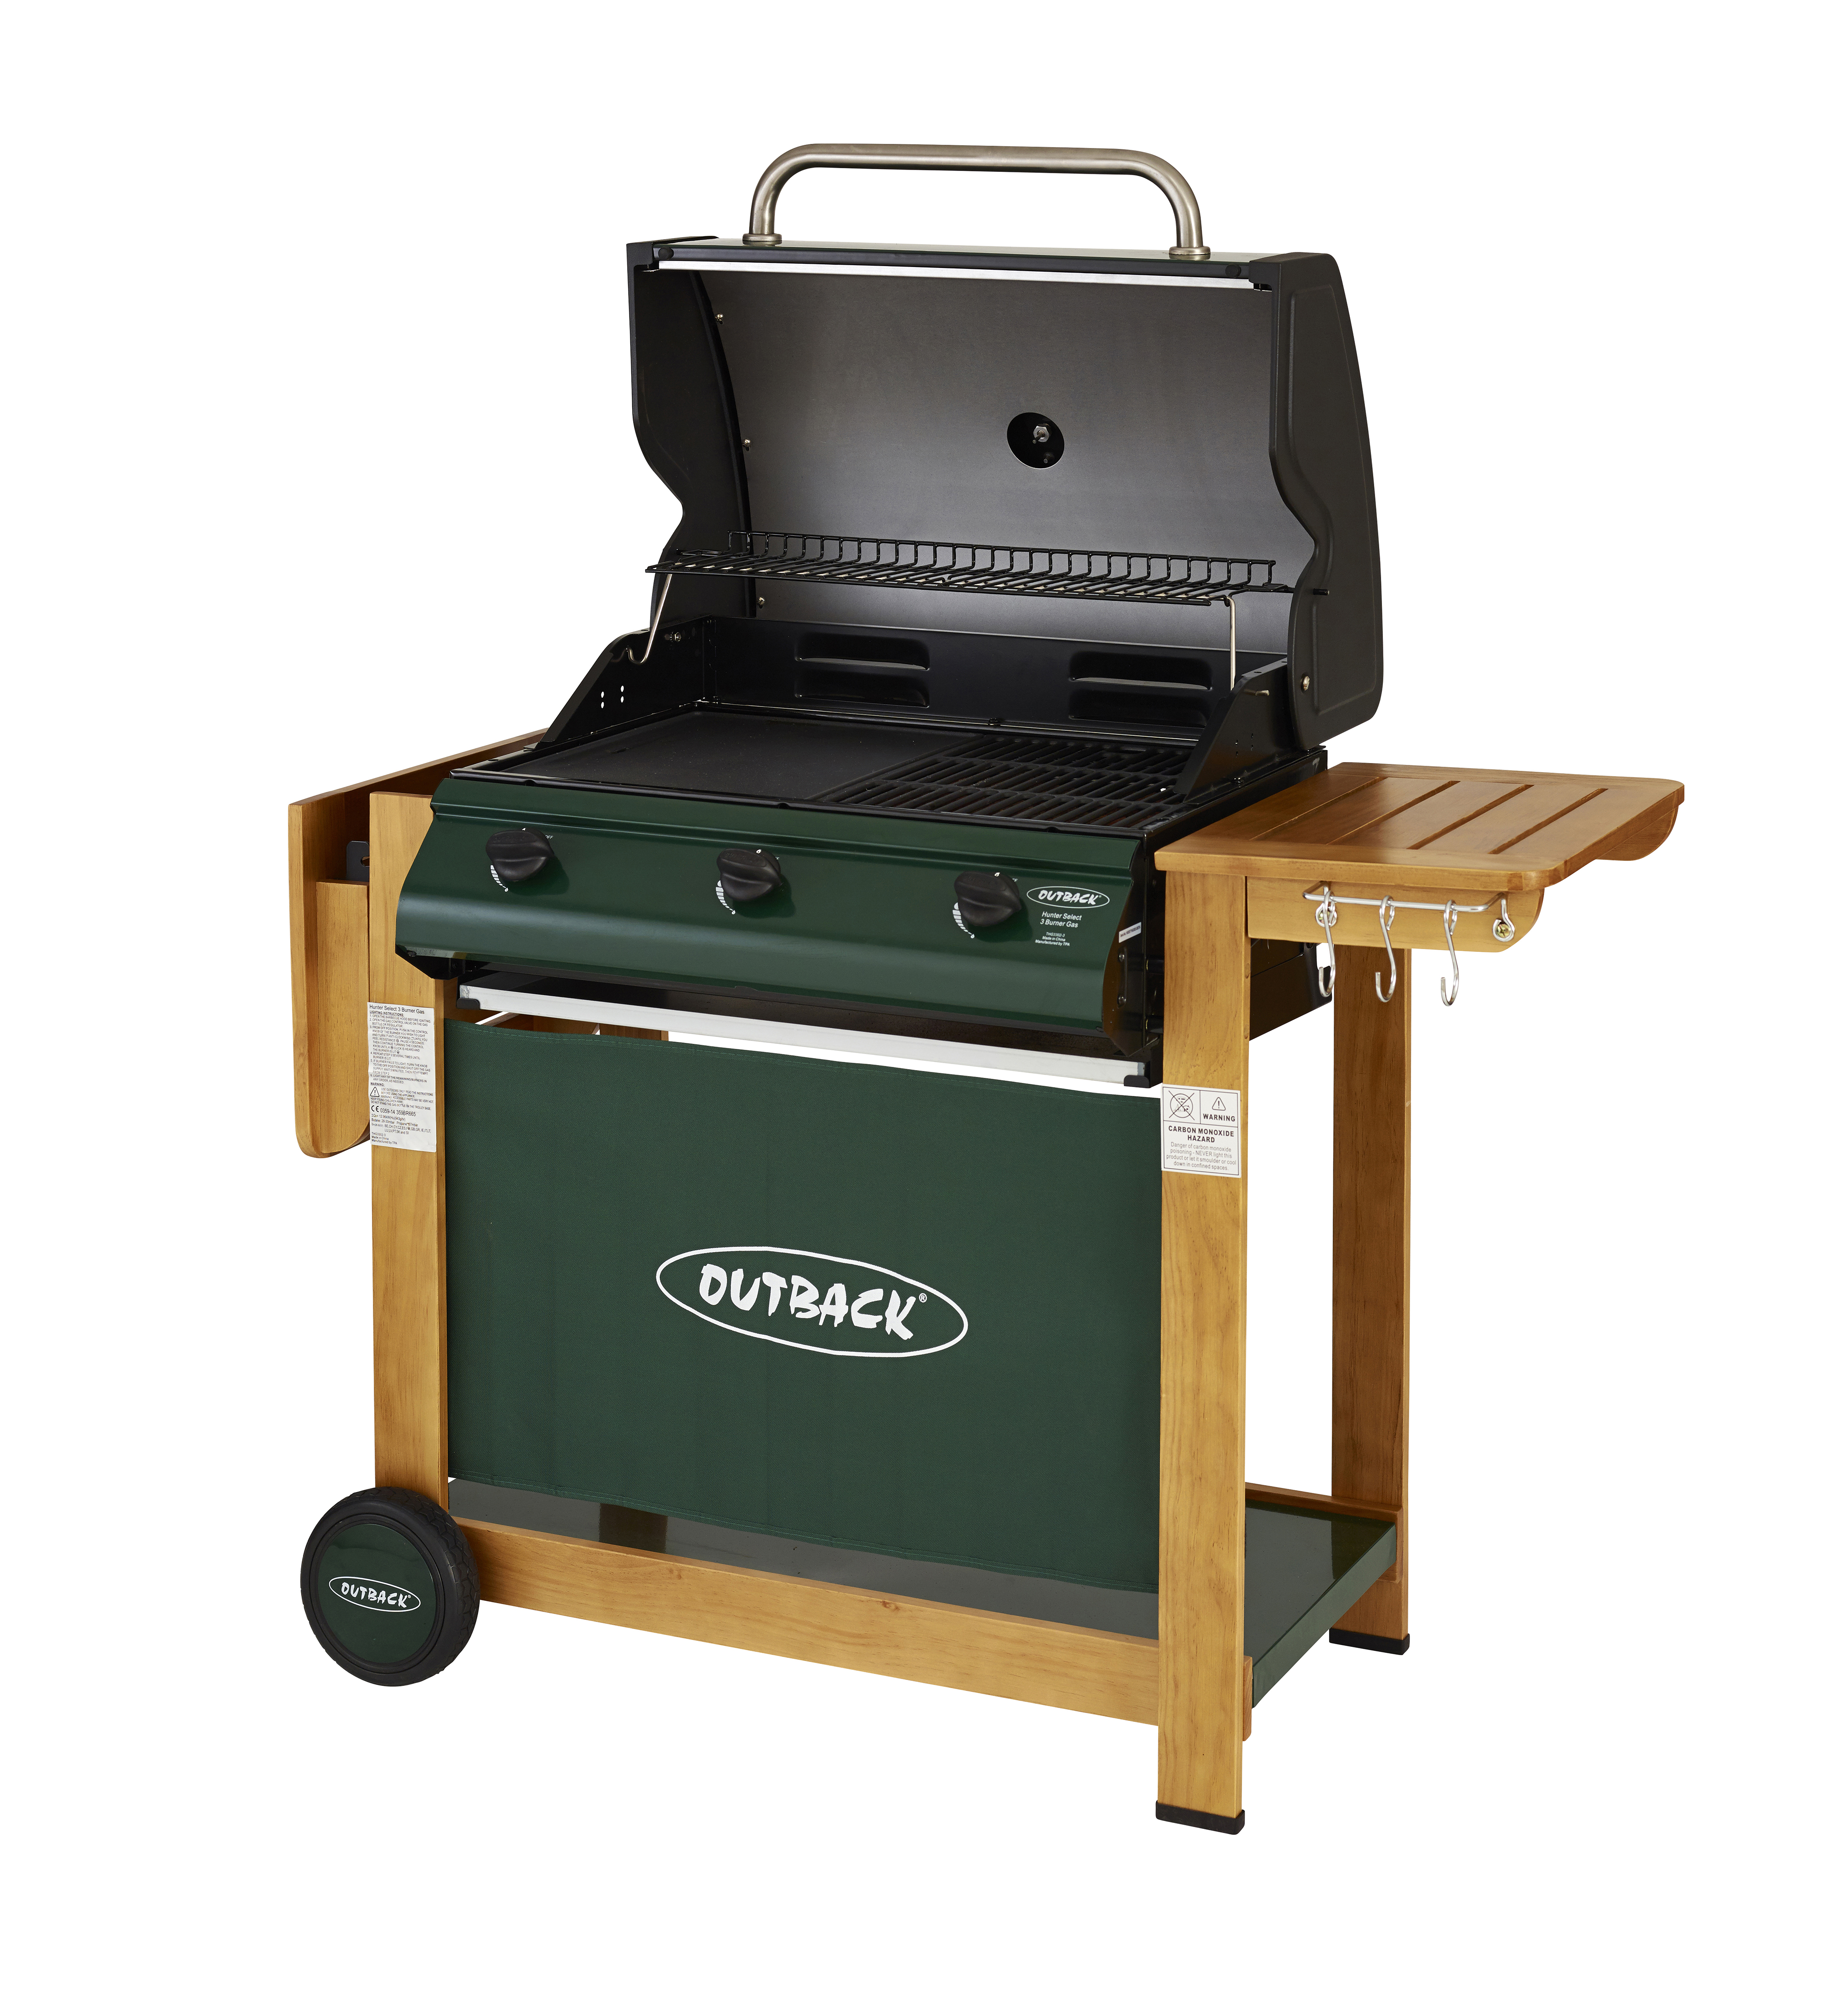 Outback Hunter 3 Burner Hooded Gas Barbecue